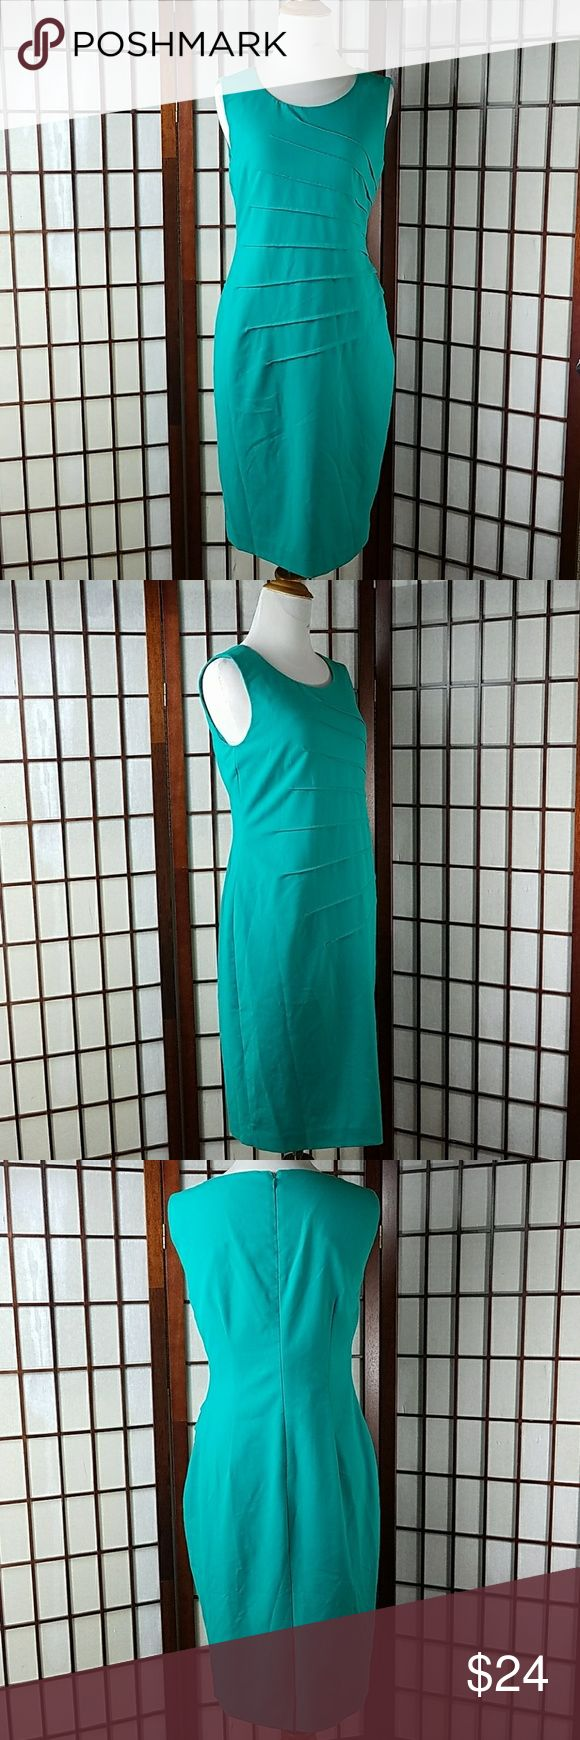 "Calvin Klein Sheath Dress Size 6 Pre-owned gently worn  CALVIN KLEIN SIZE 6 Sheath Dress style  Sleeveless sleeve style Pleated Front  Solid pattern Shade of Green  (shamrock green) color Lined Made of polyester,  rayon and spandex   Measurement Approximate  Pit to pit 16.5"" Shoulder to hem 38"" Waist 30"" Calvin Klein Dresses"